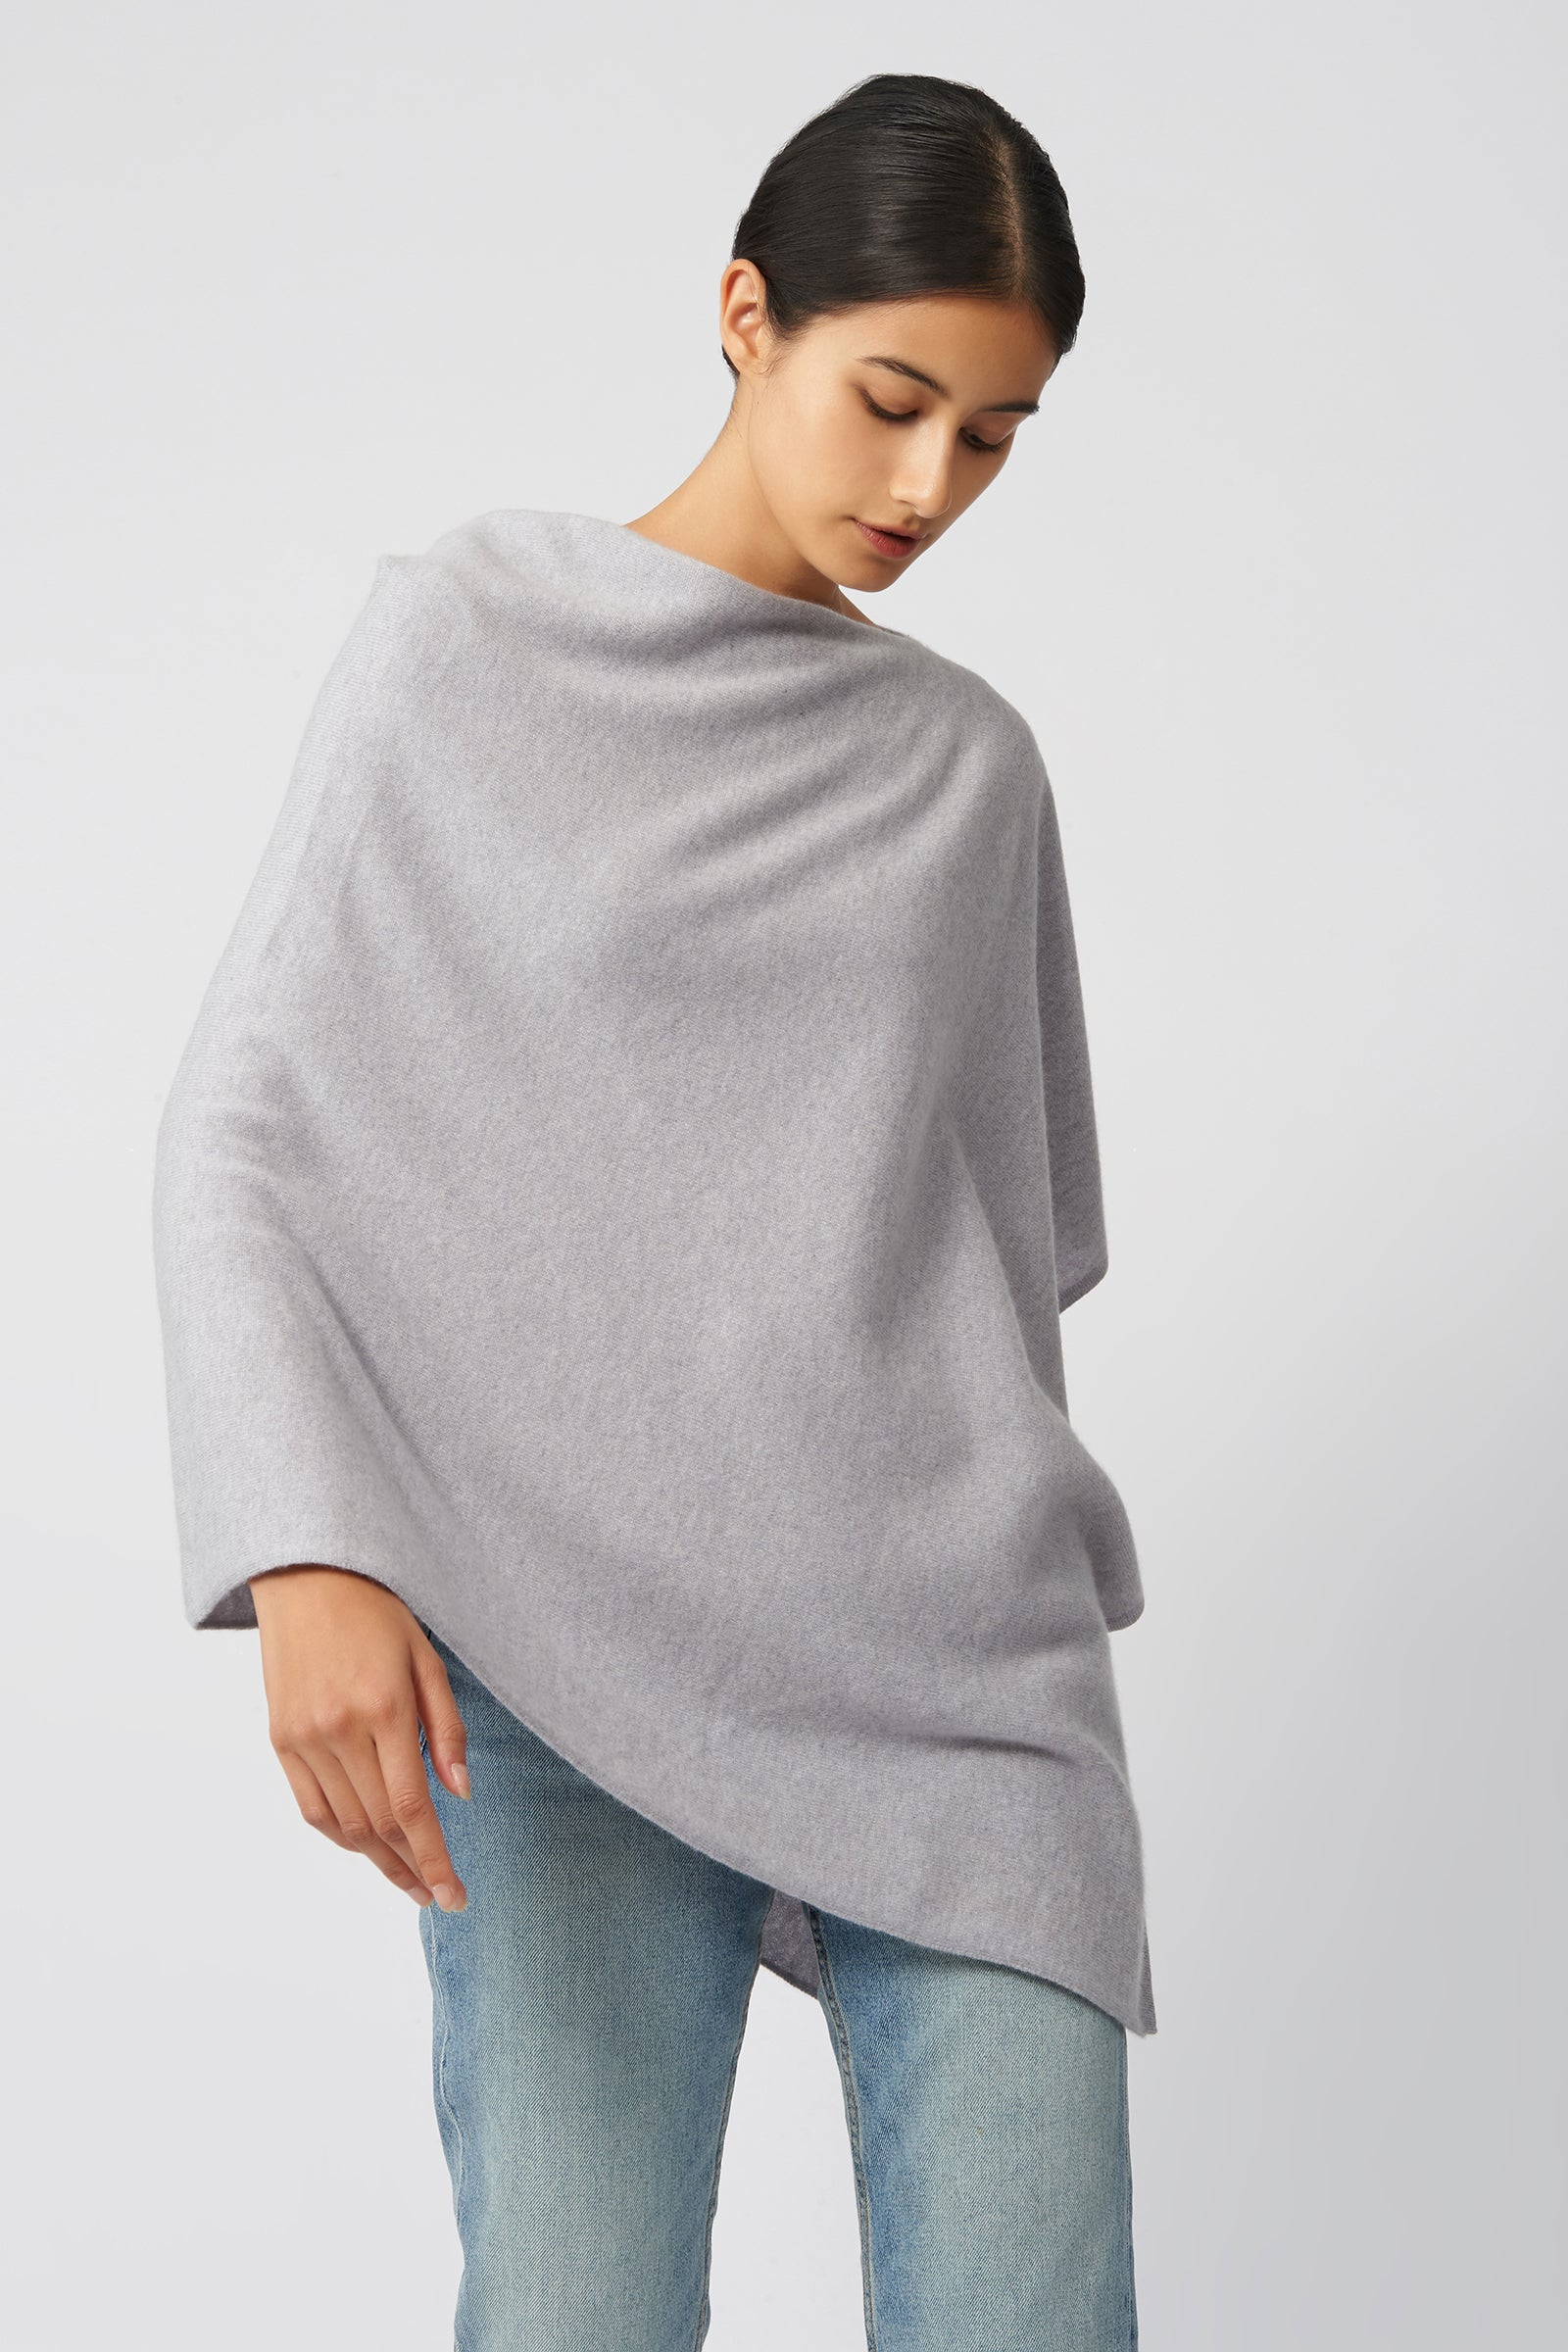 Kal Rieman Cashmere Poncho in Grey Heather on Model Side View